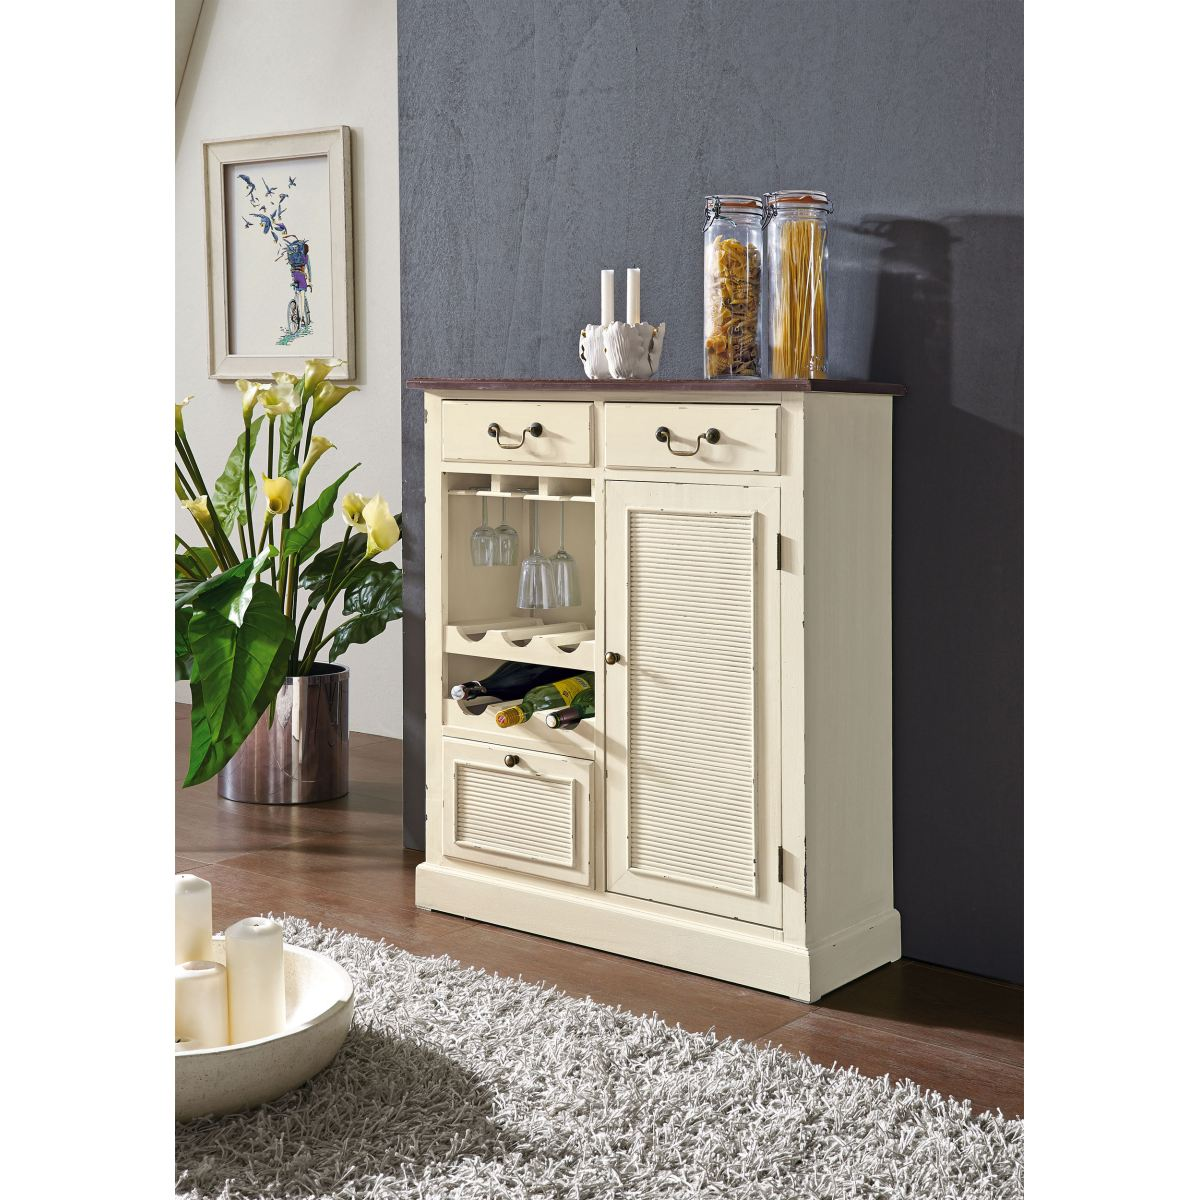 ger umiger barschrank im landhausstil in der farbe creme. Black Bedroom Furniture Sets. Home Design Ideas